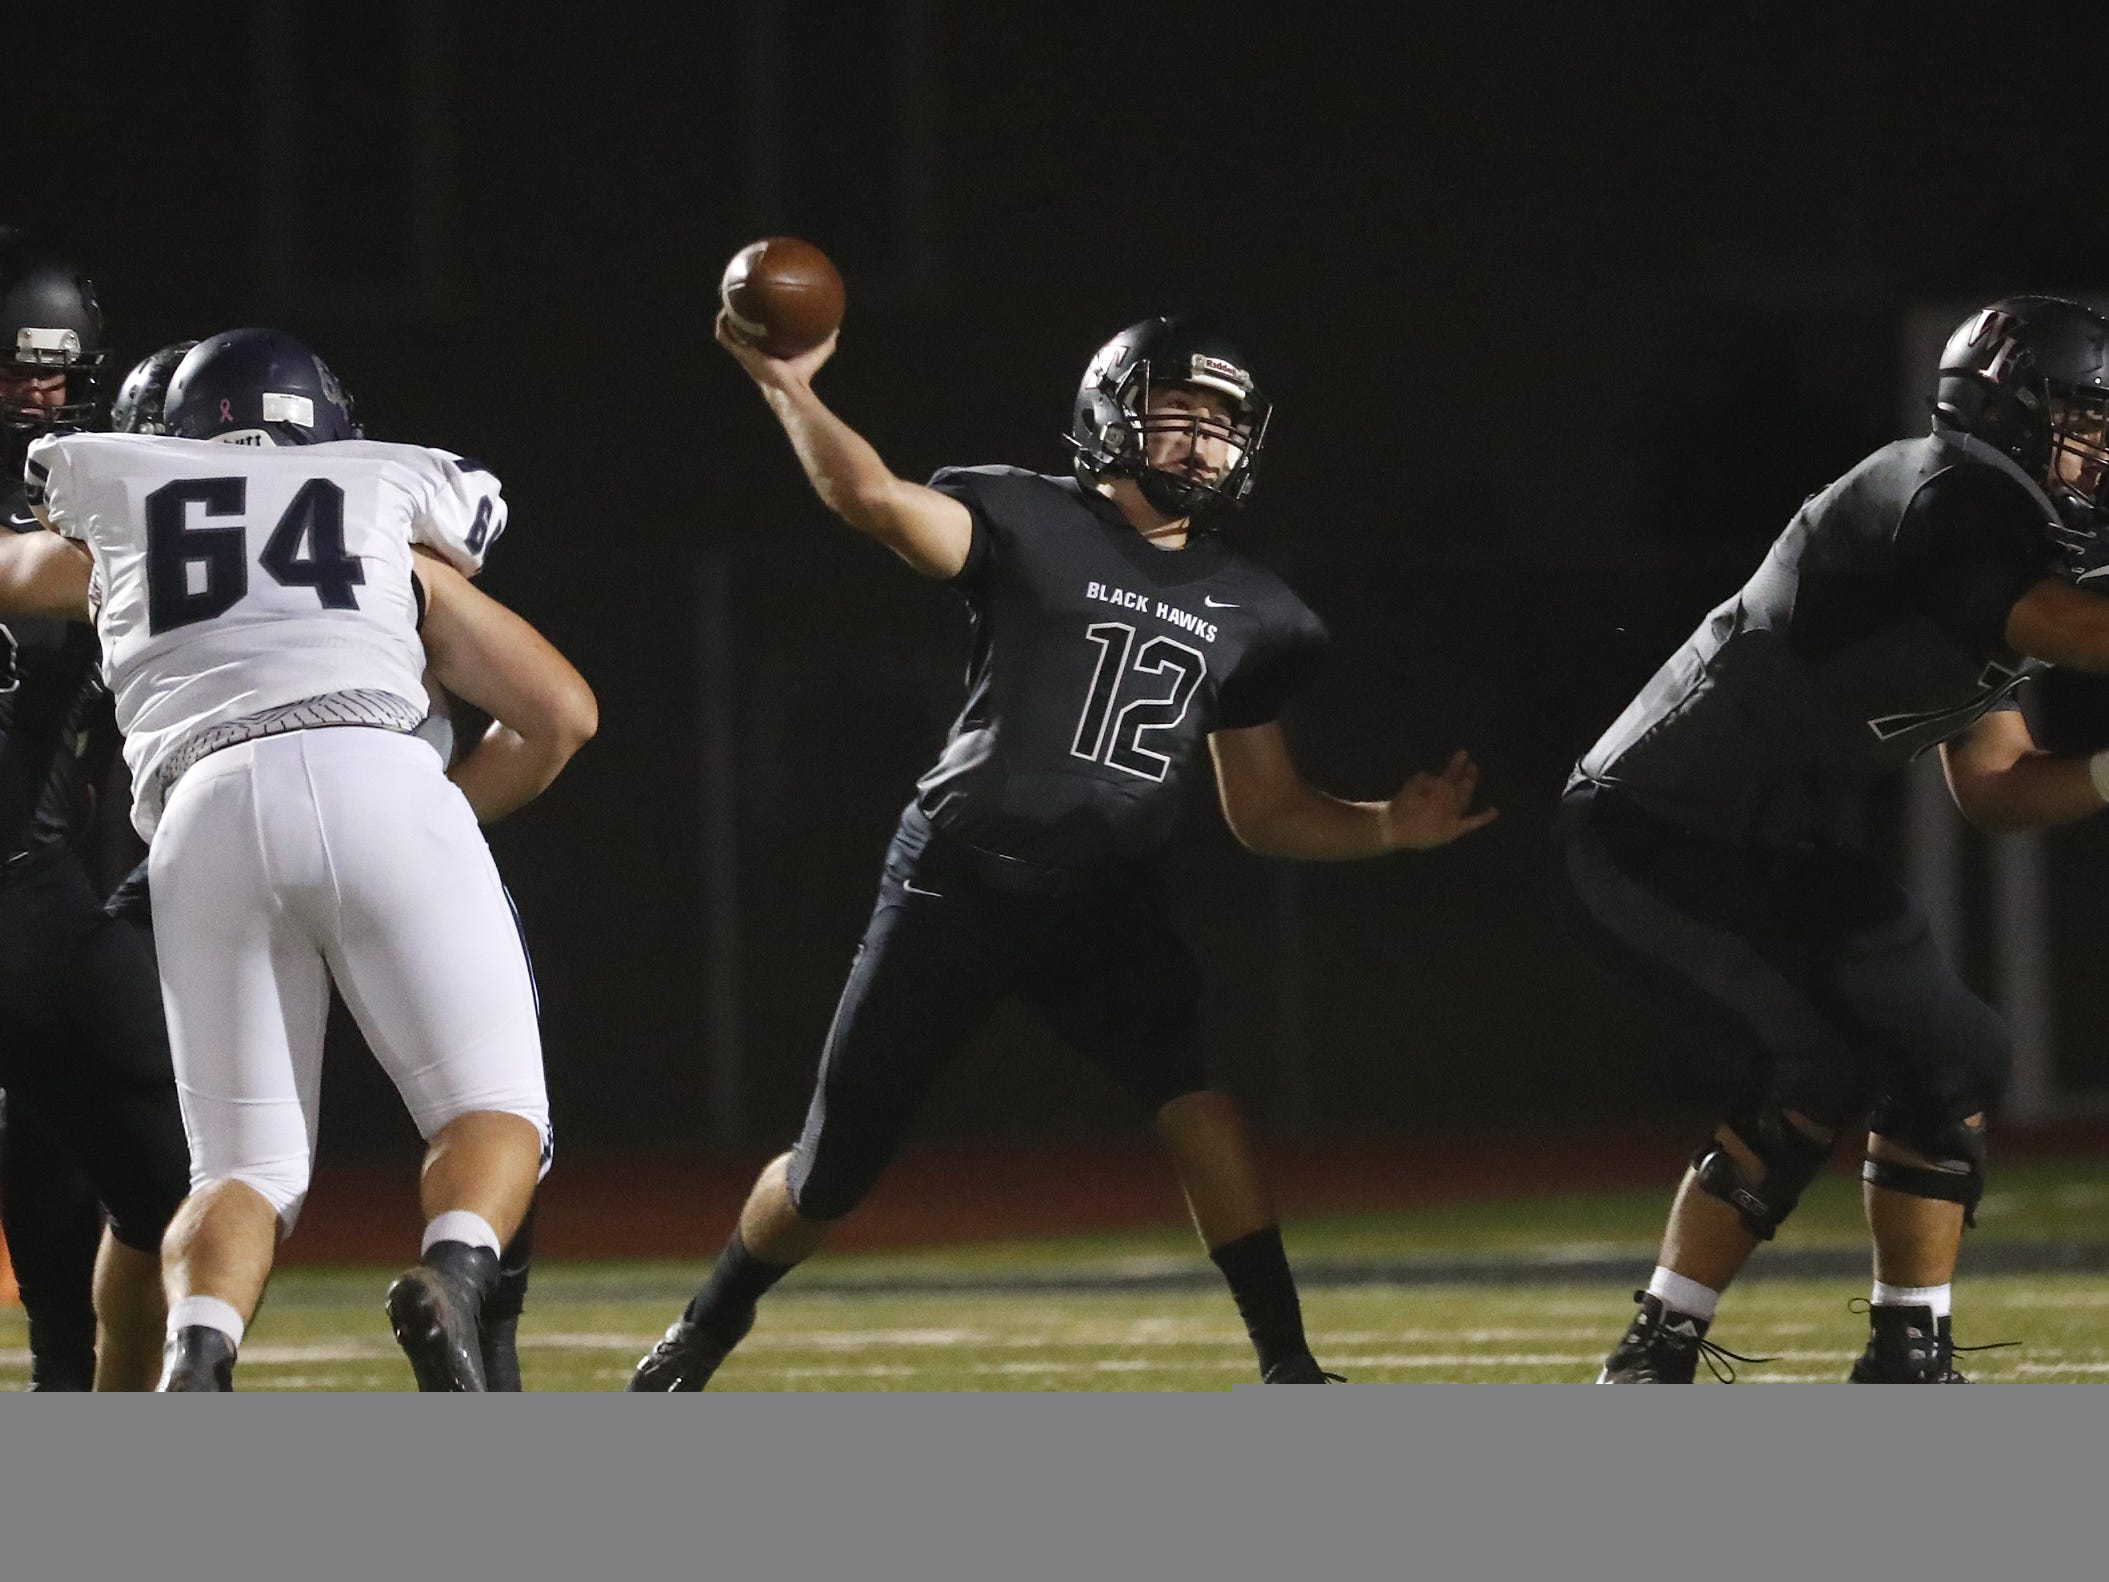 Williams Field's Zack Shepherd (12) throws a pass under pressure from Higley's Jackson Solomon (64) during the first half at Williams Field High School in Gilbert, Ariz. on October 26, 2018.